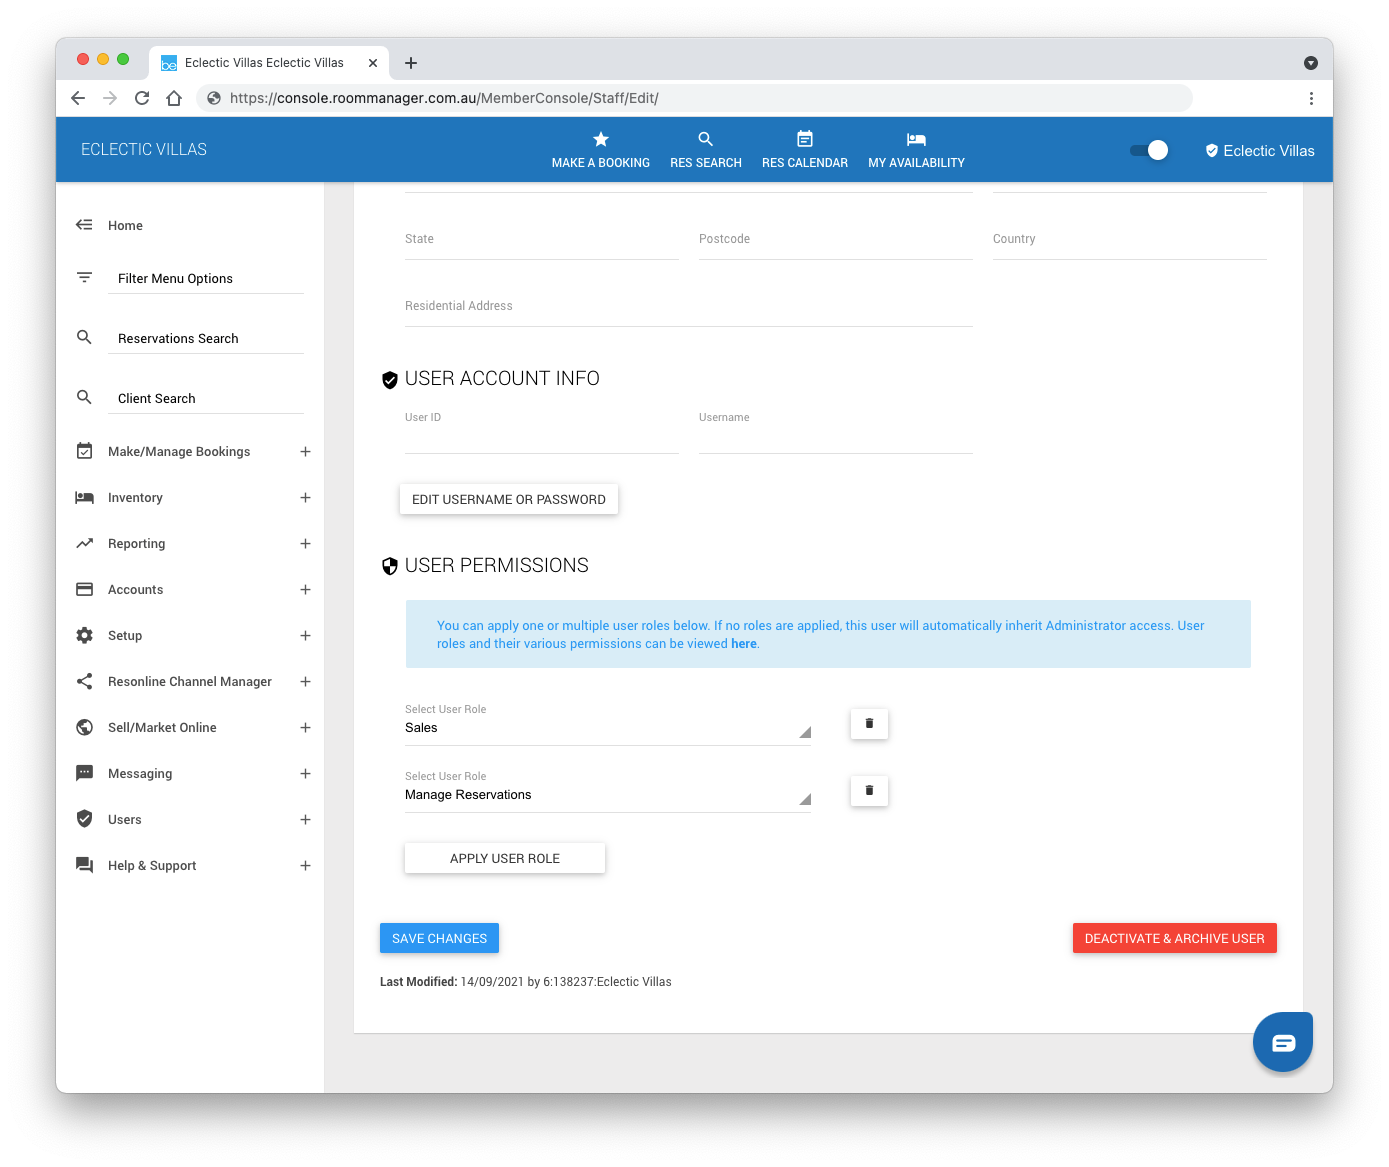 Manage User Permissions